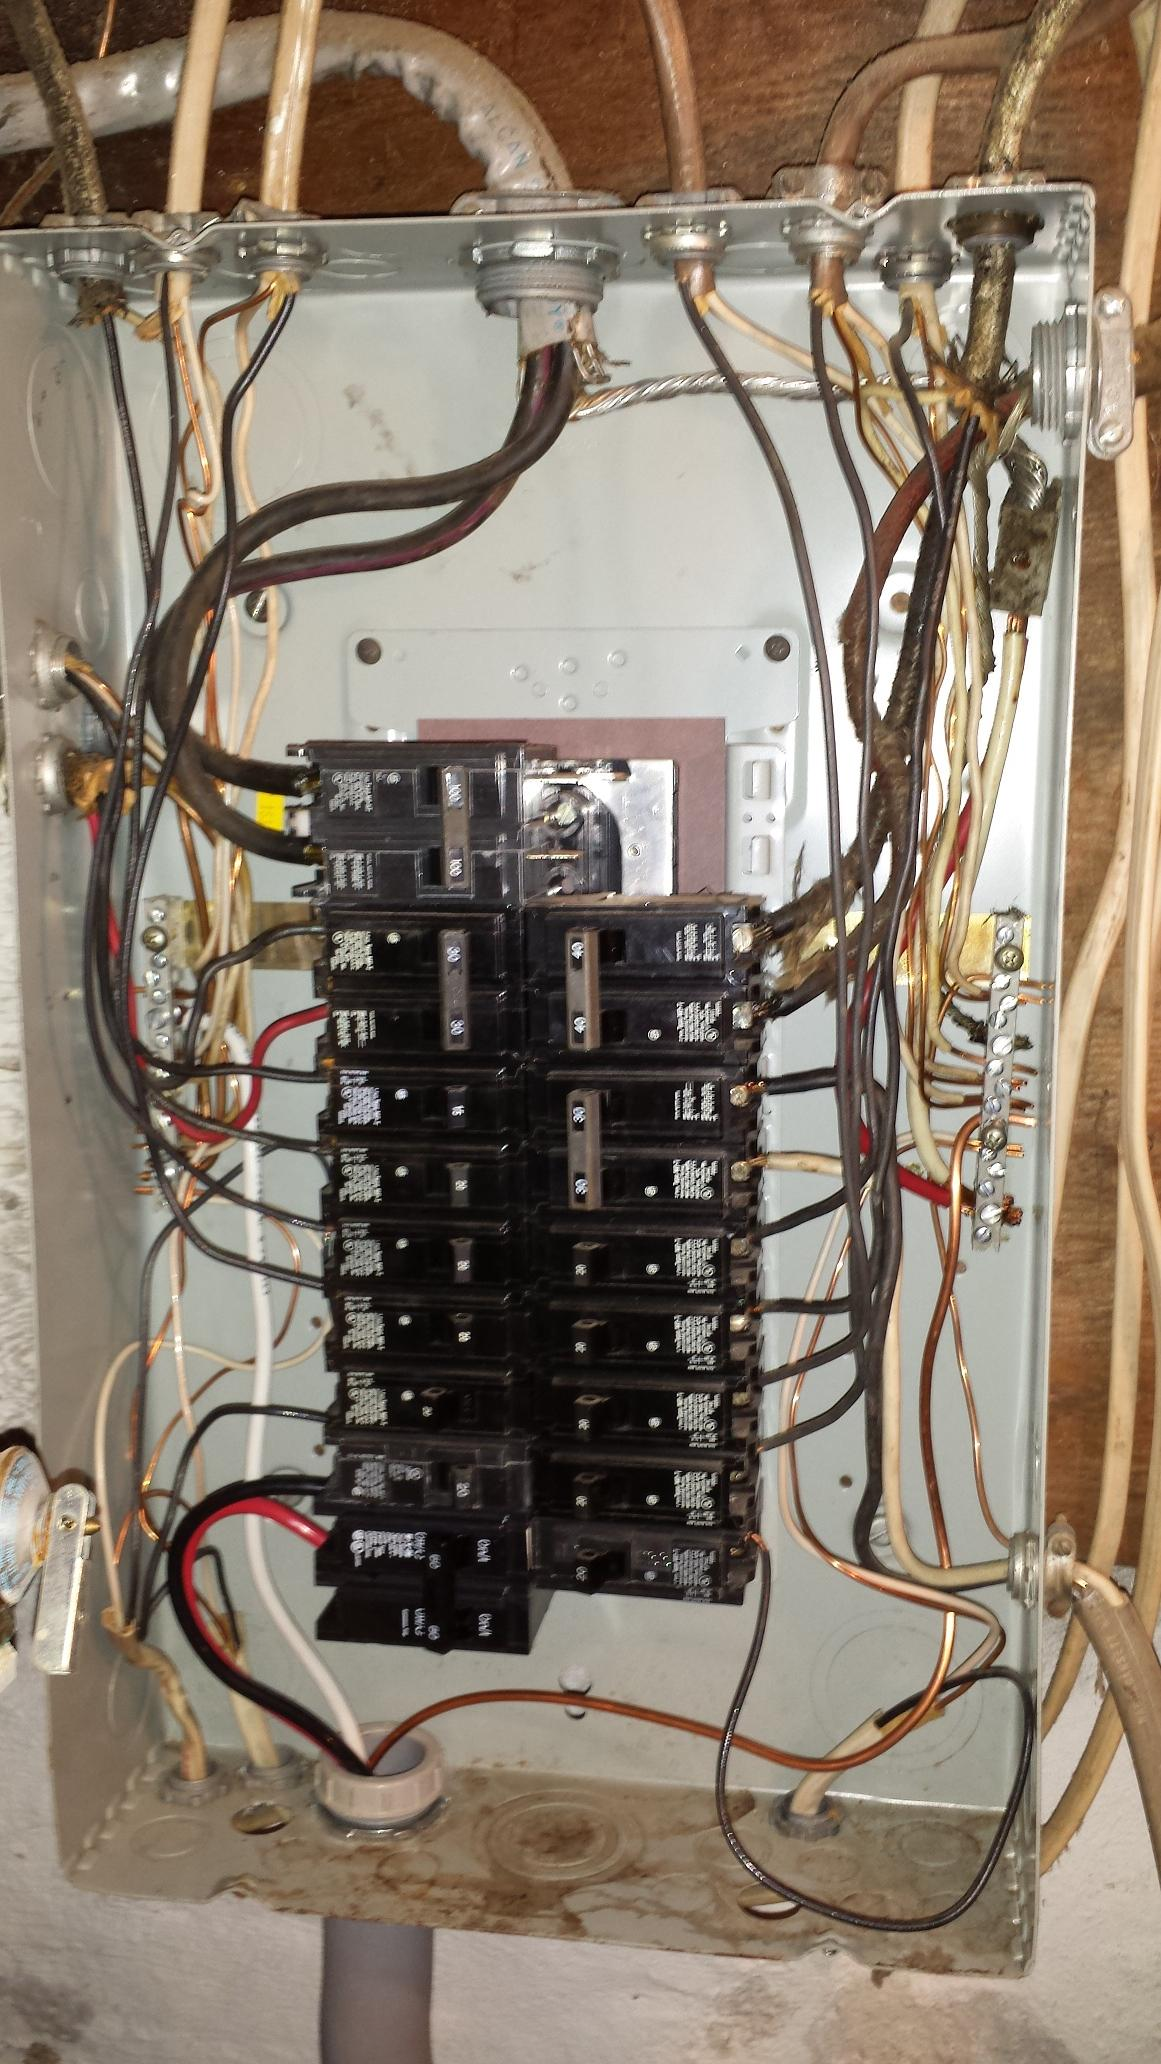 hight resolution of electrical panel is the wiring in this subpanel correct home wiring a new sub panel in to get 240 wiring a new sub panel